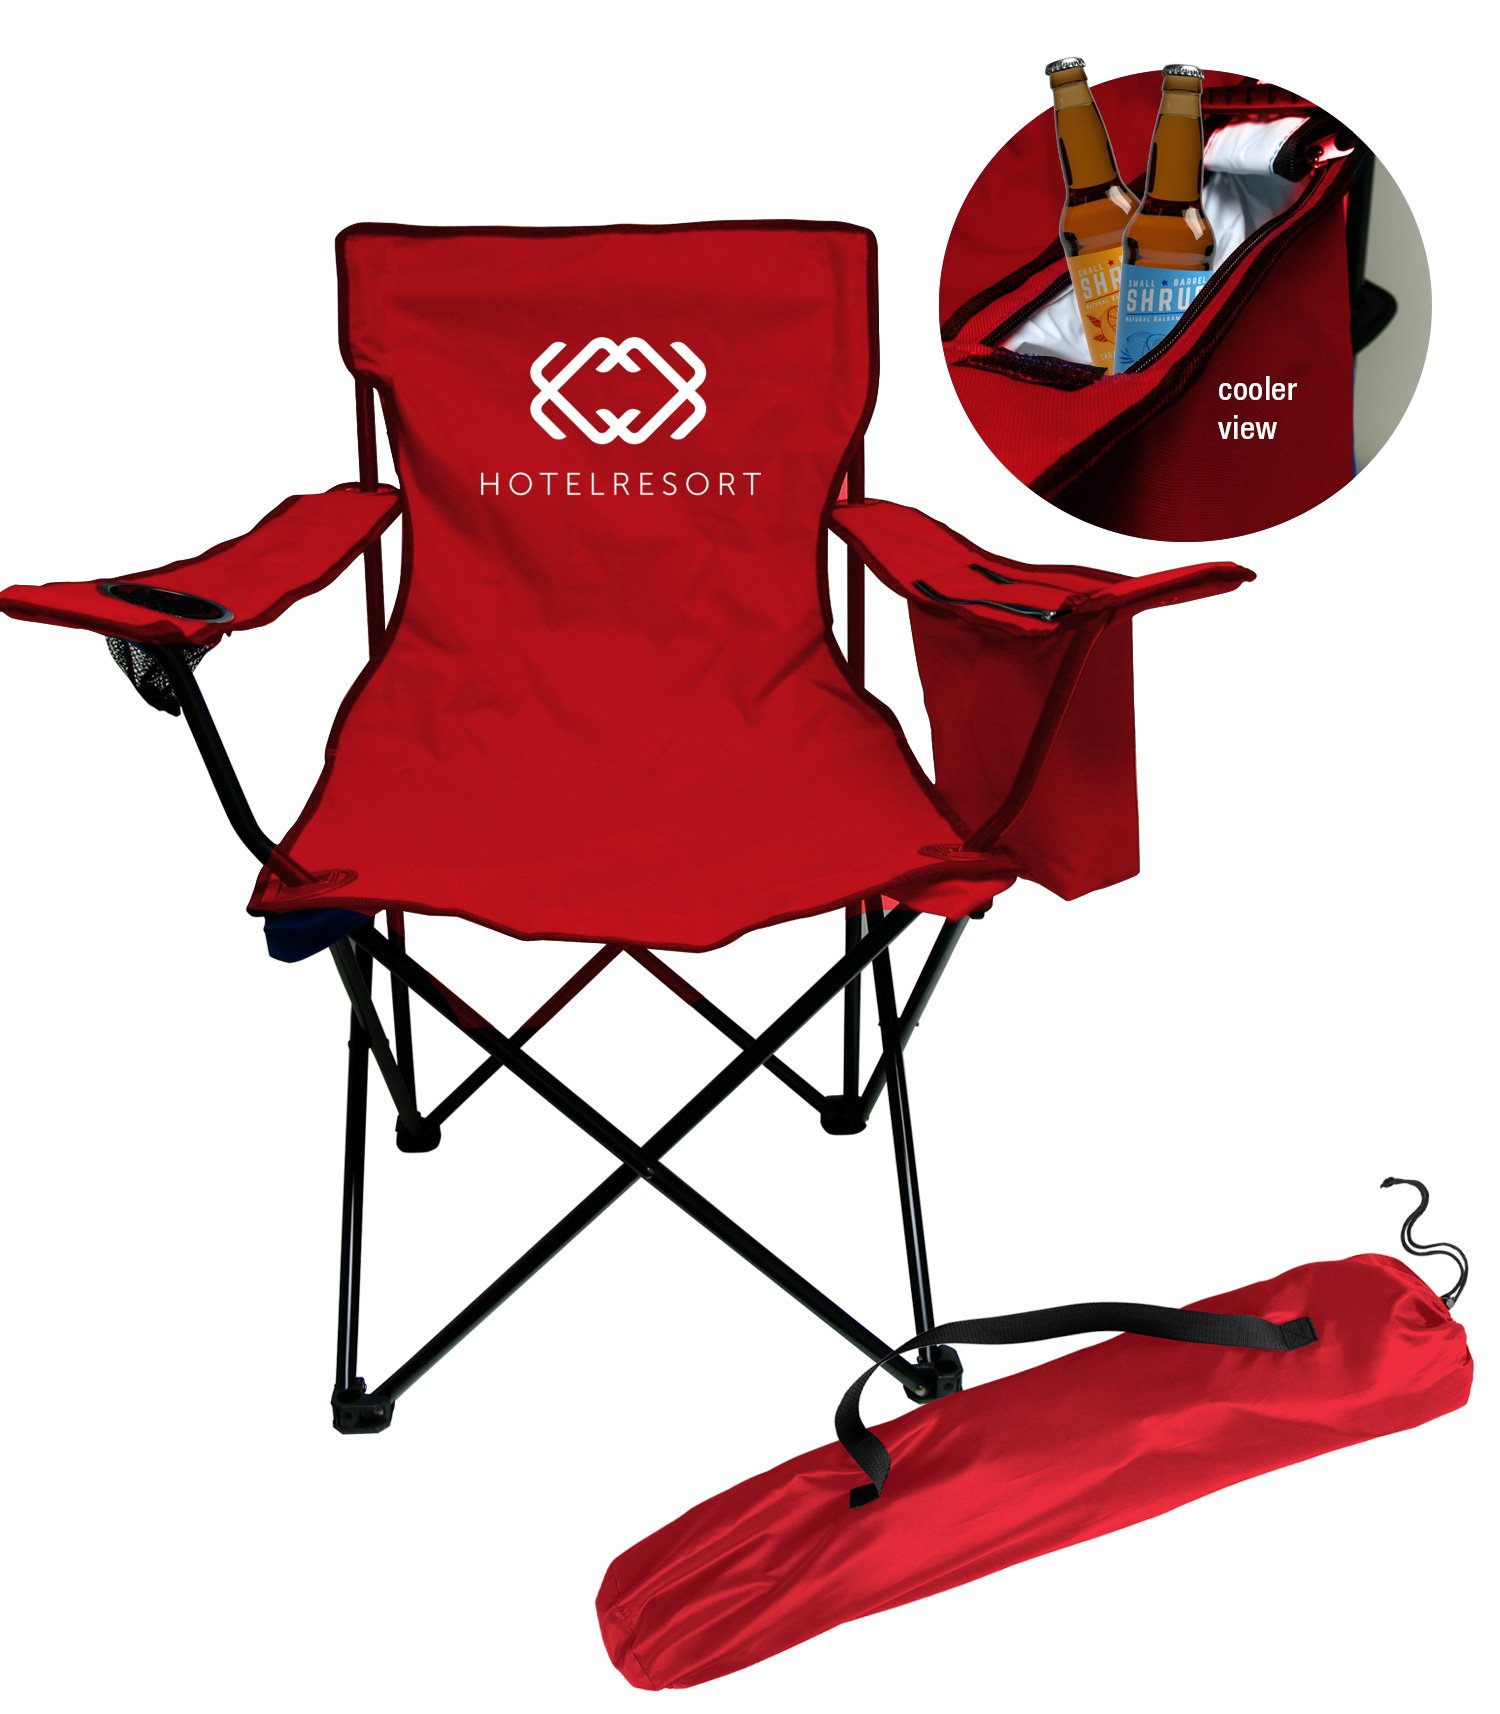 Sturdy Camping Chair Style 200cc Cooler Chair